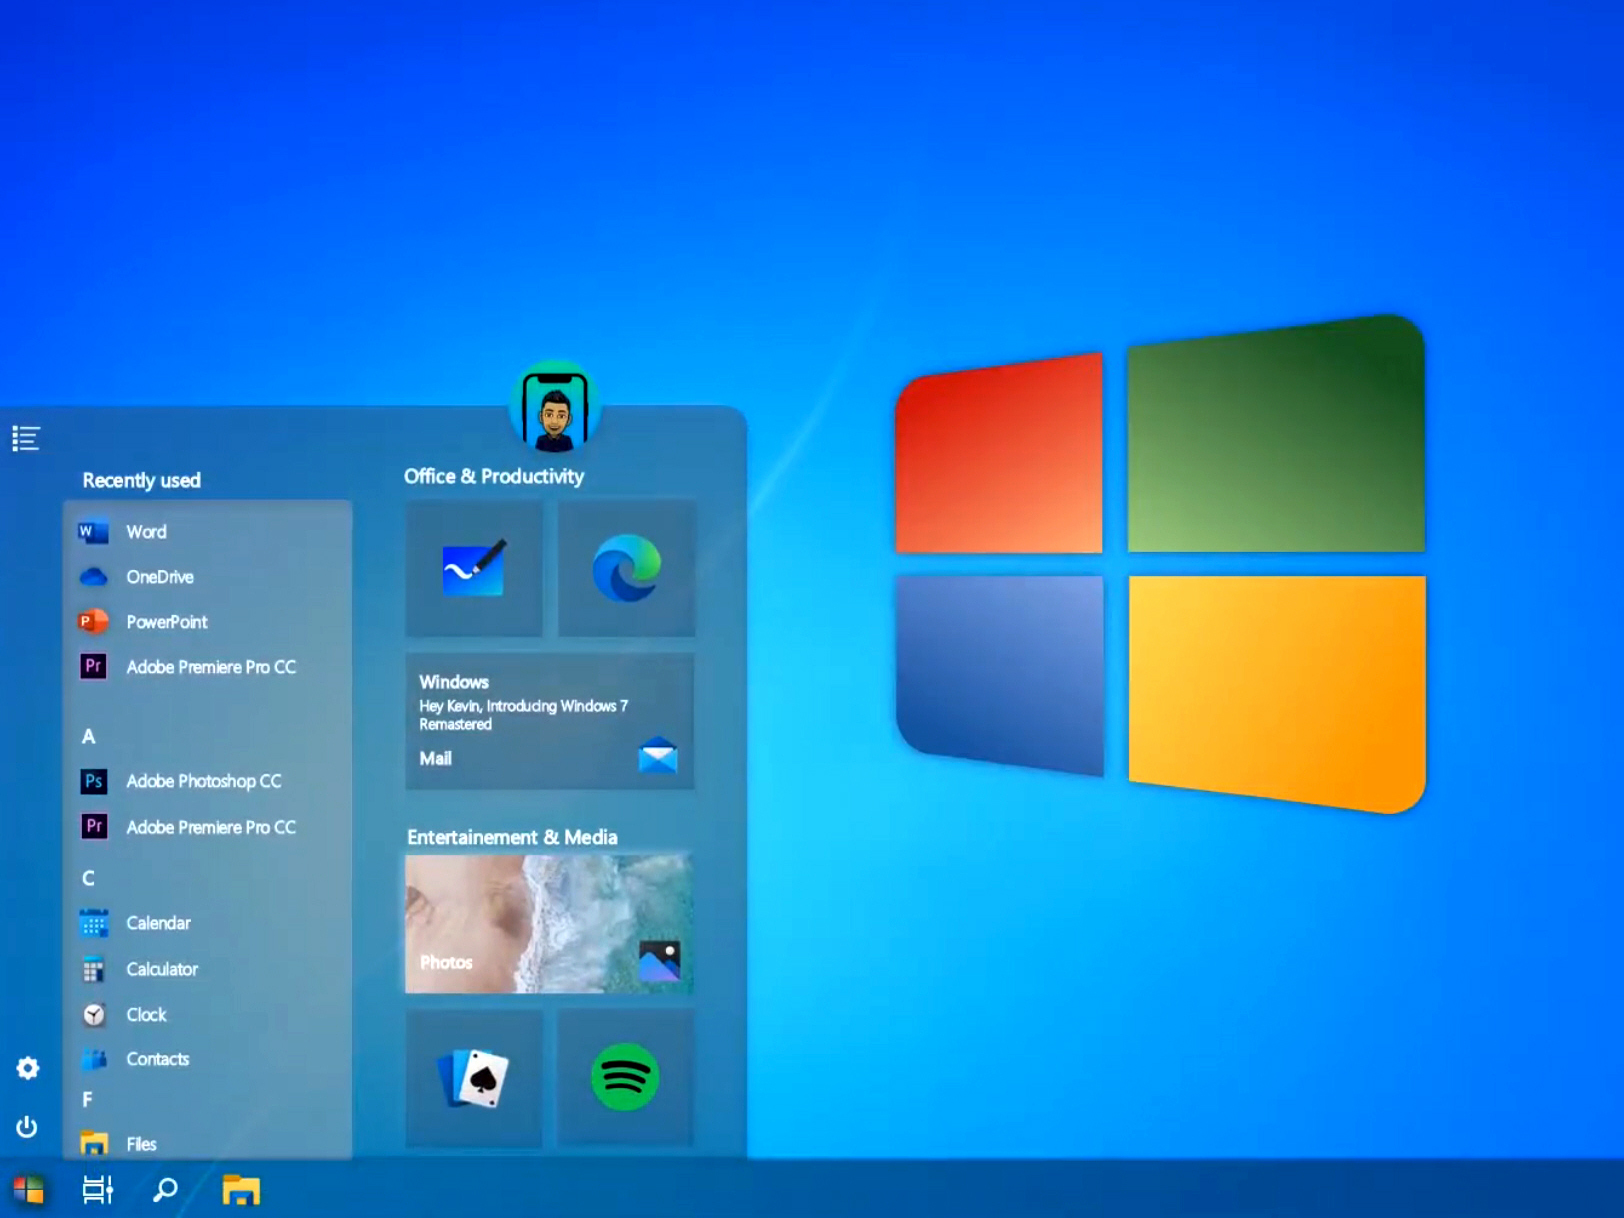 Windows 7 Returns With The Stunning 2020 Edition